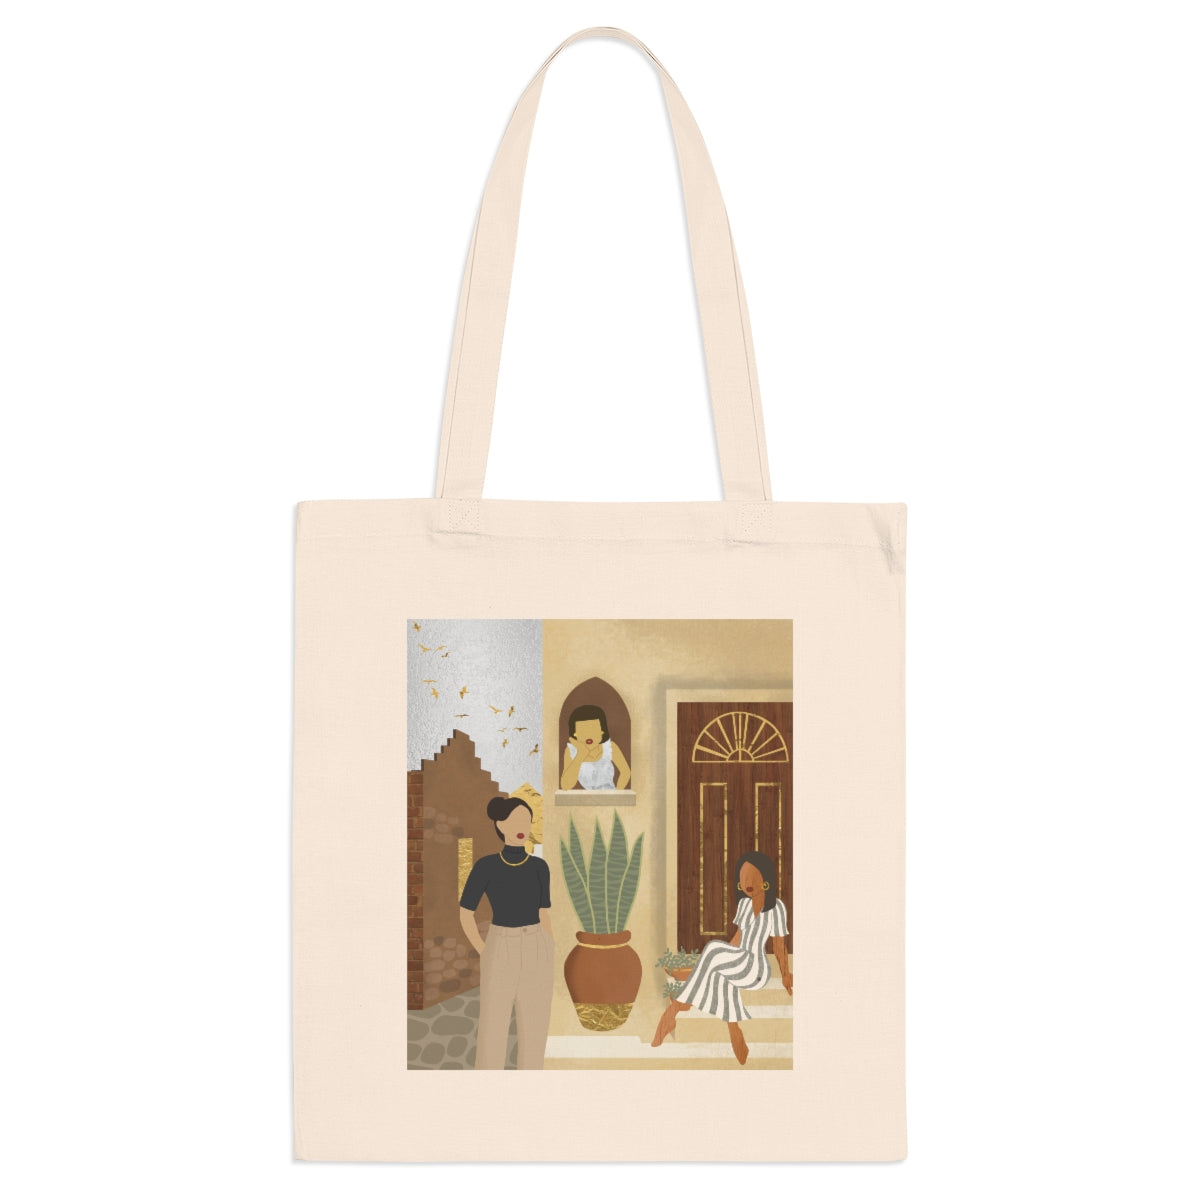 Women of Worth Tote Bag (Limited Edition)